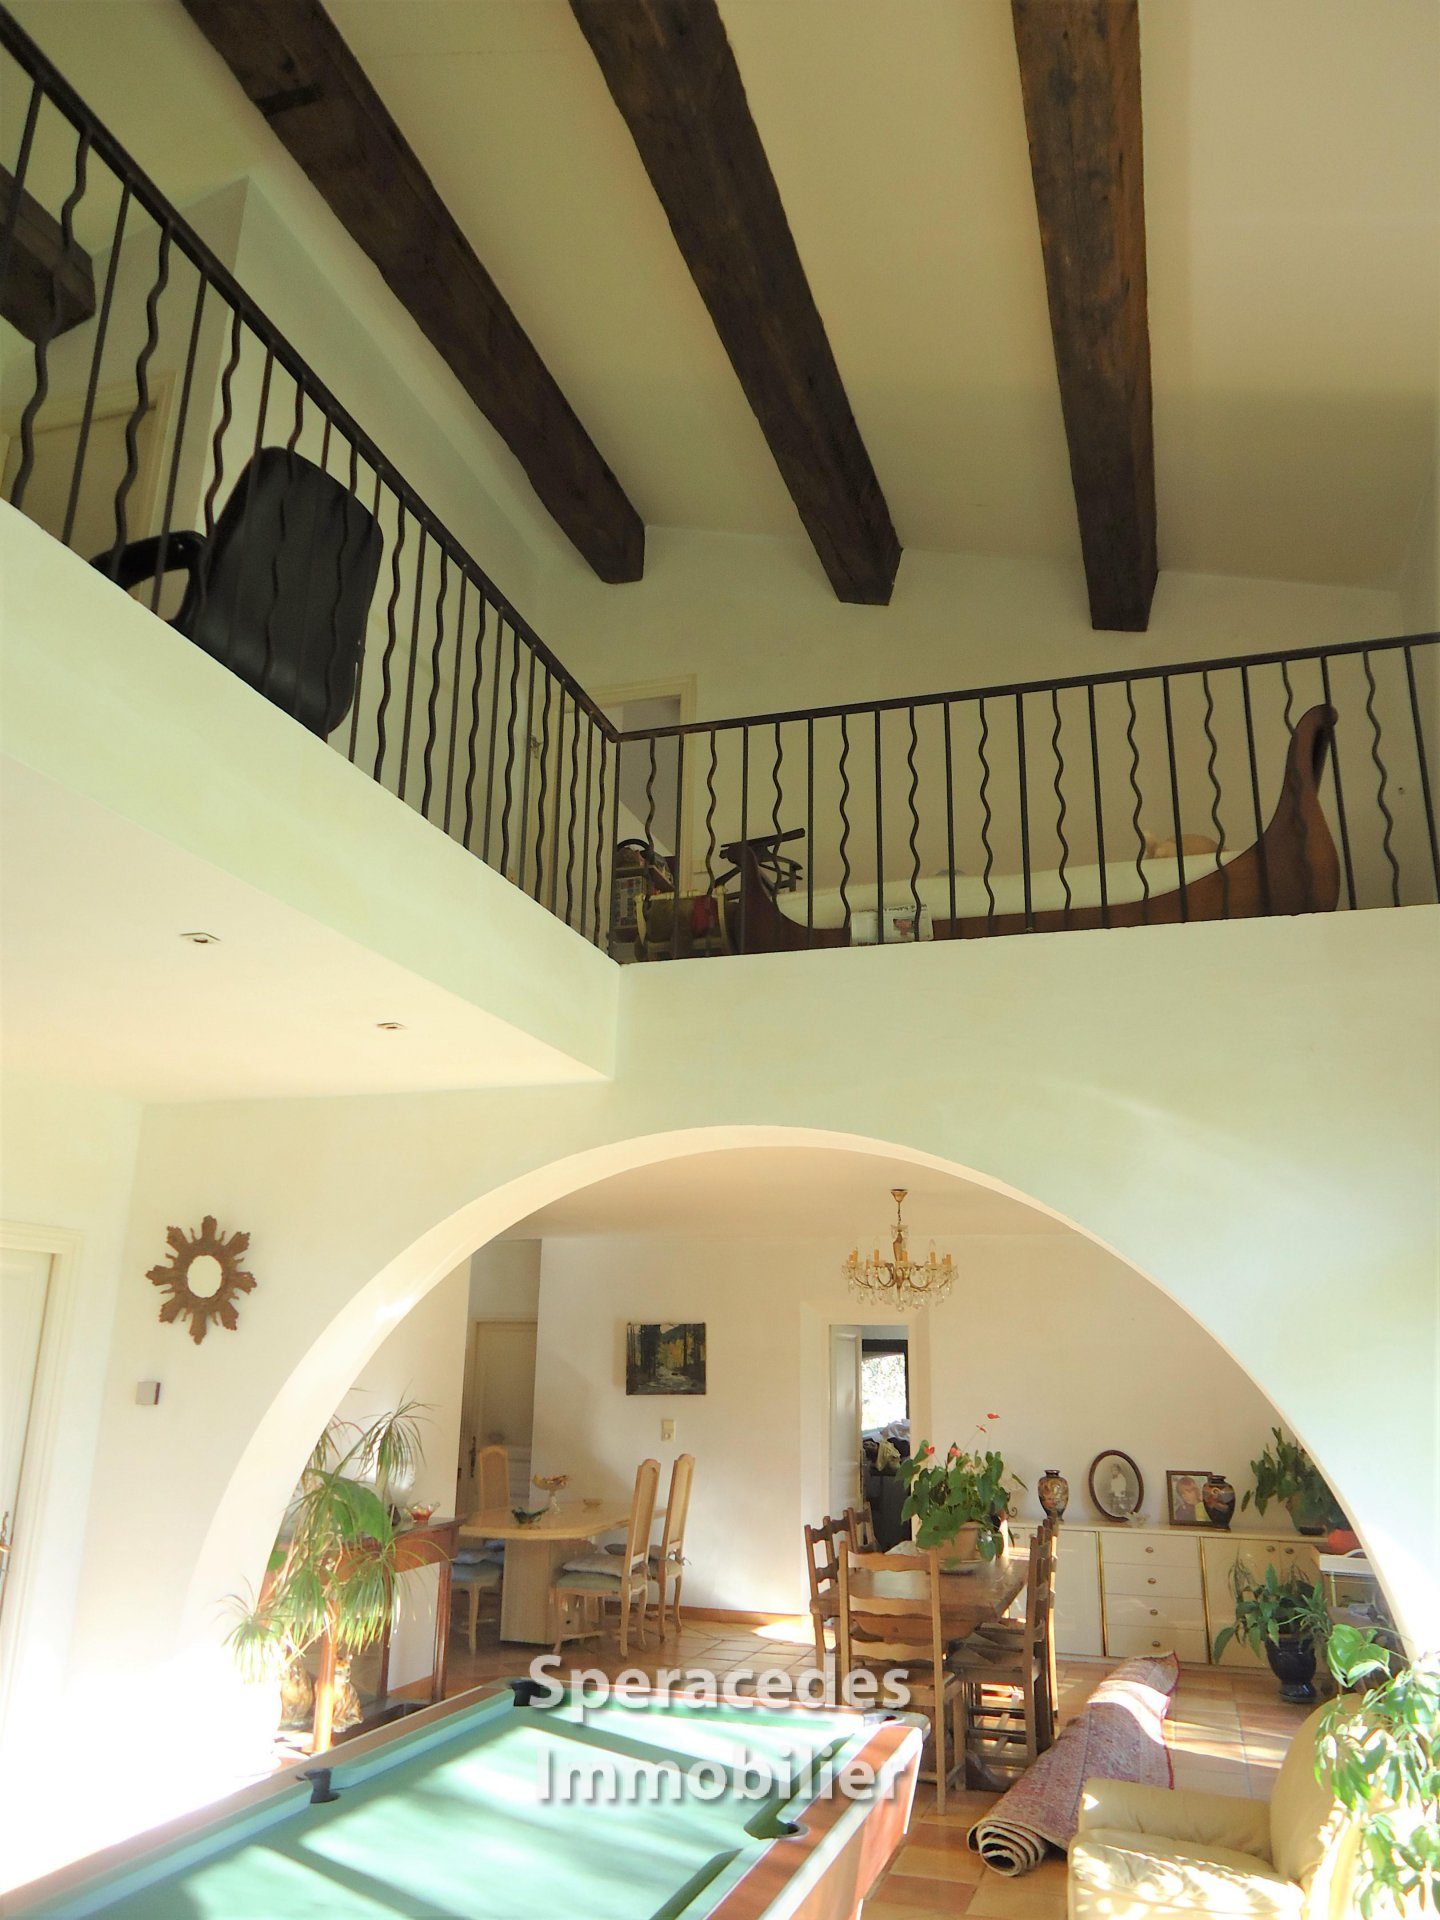 Living room with mezzanine area